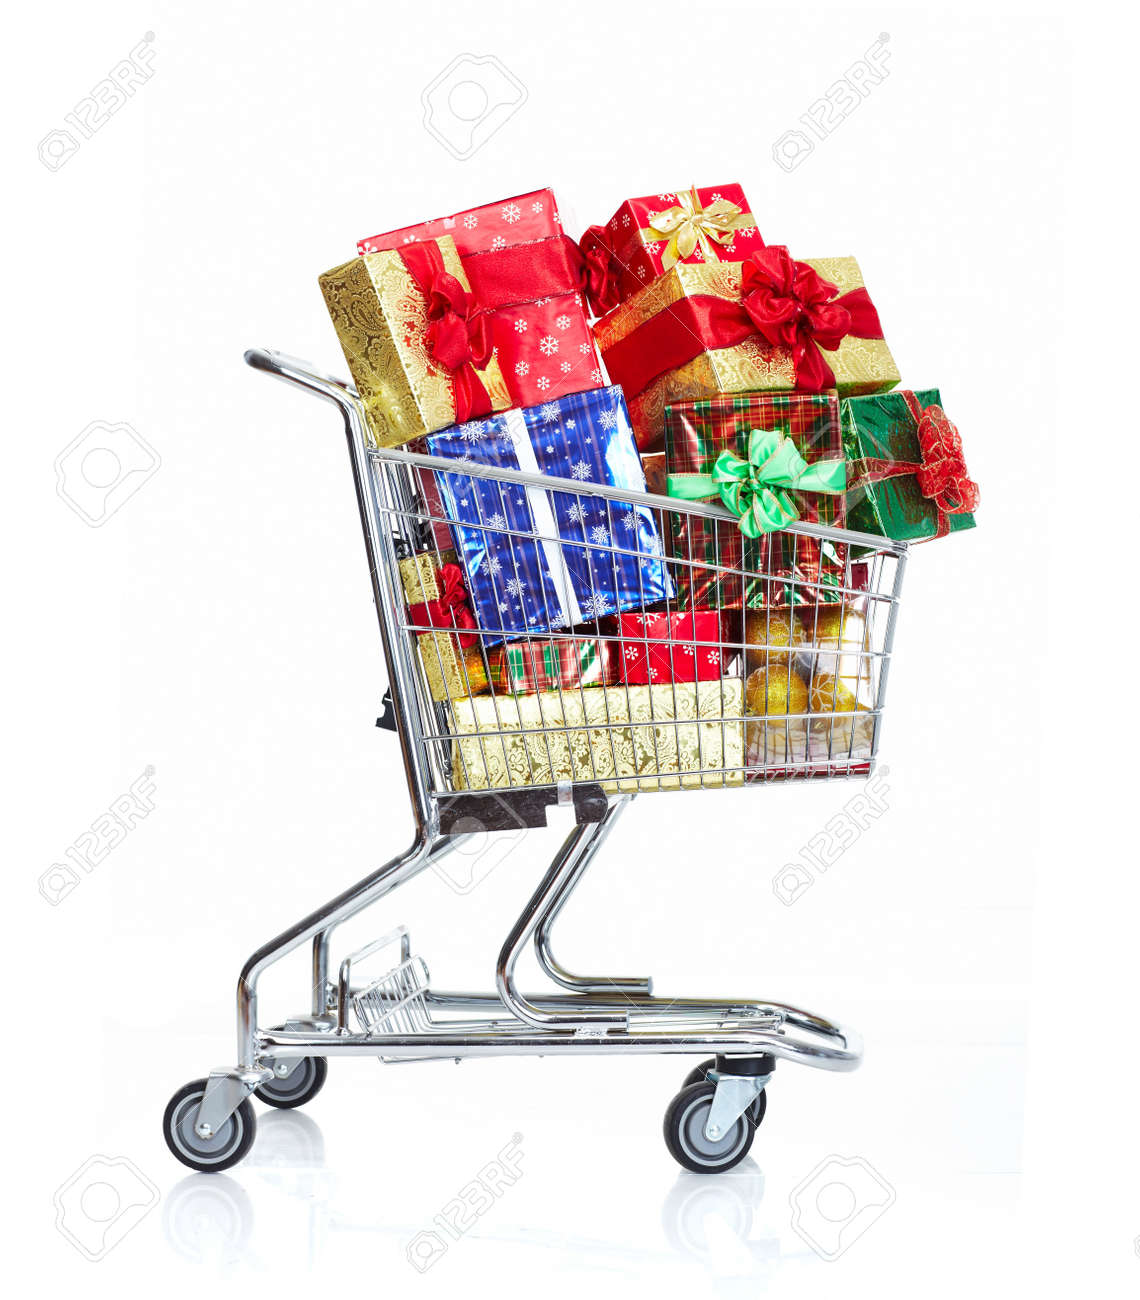 Christmas shopping cart with gifts. Stock Photo - 11081379